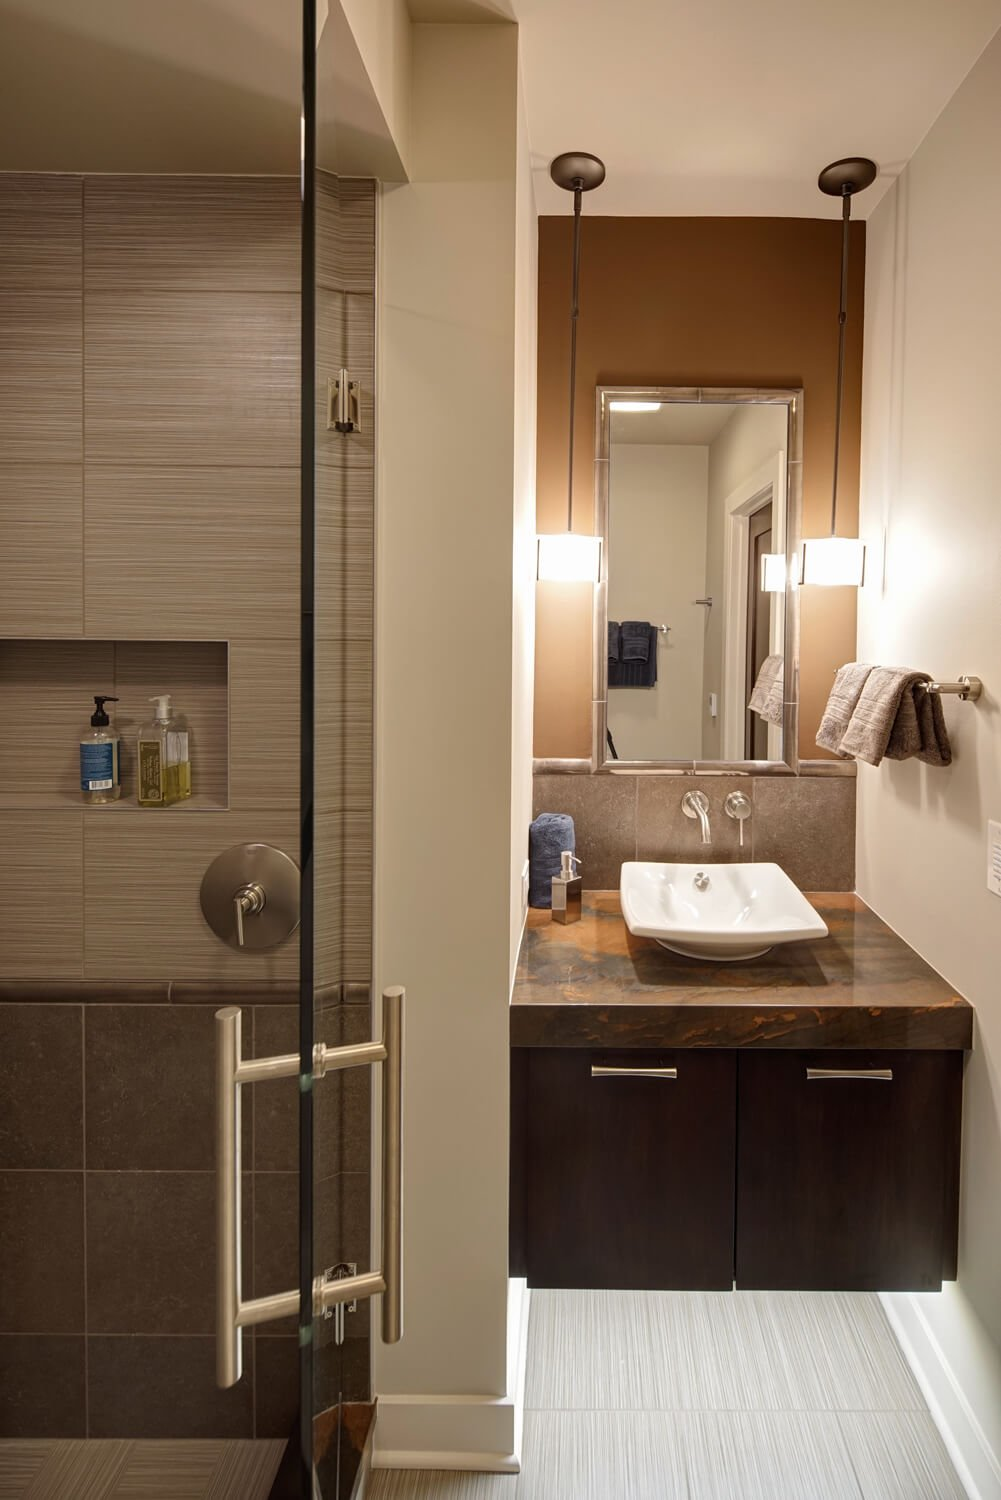 The basement holds its own private bathroom space, with floating marble topped vanity lit from beneath. Vessel sink and wall-mounted faucet enhance the modern feel, as does the glass enclosed shower at left.